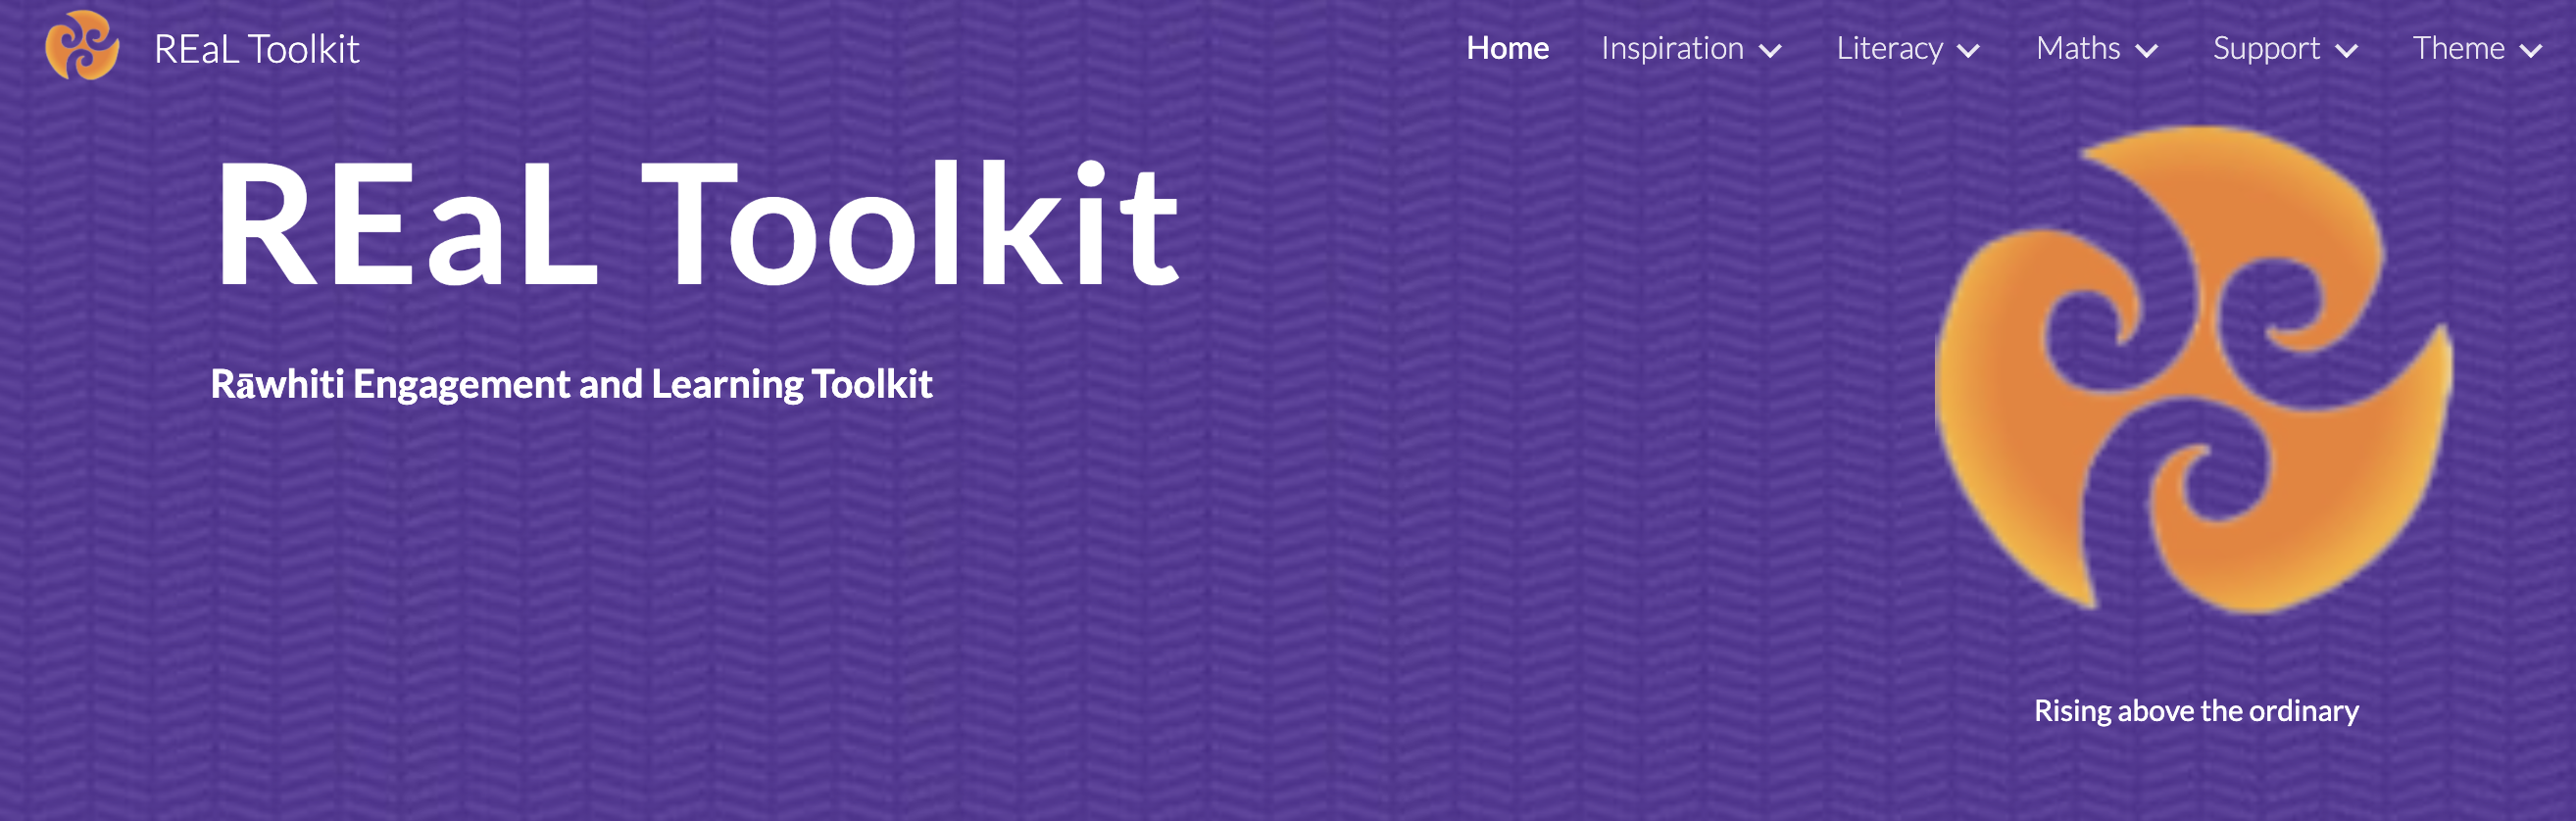 Real toolkit banner